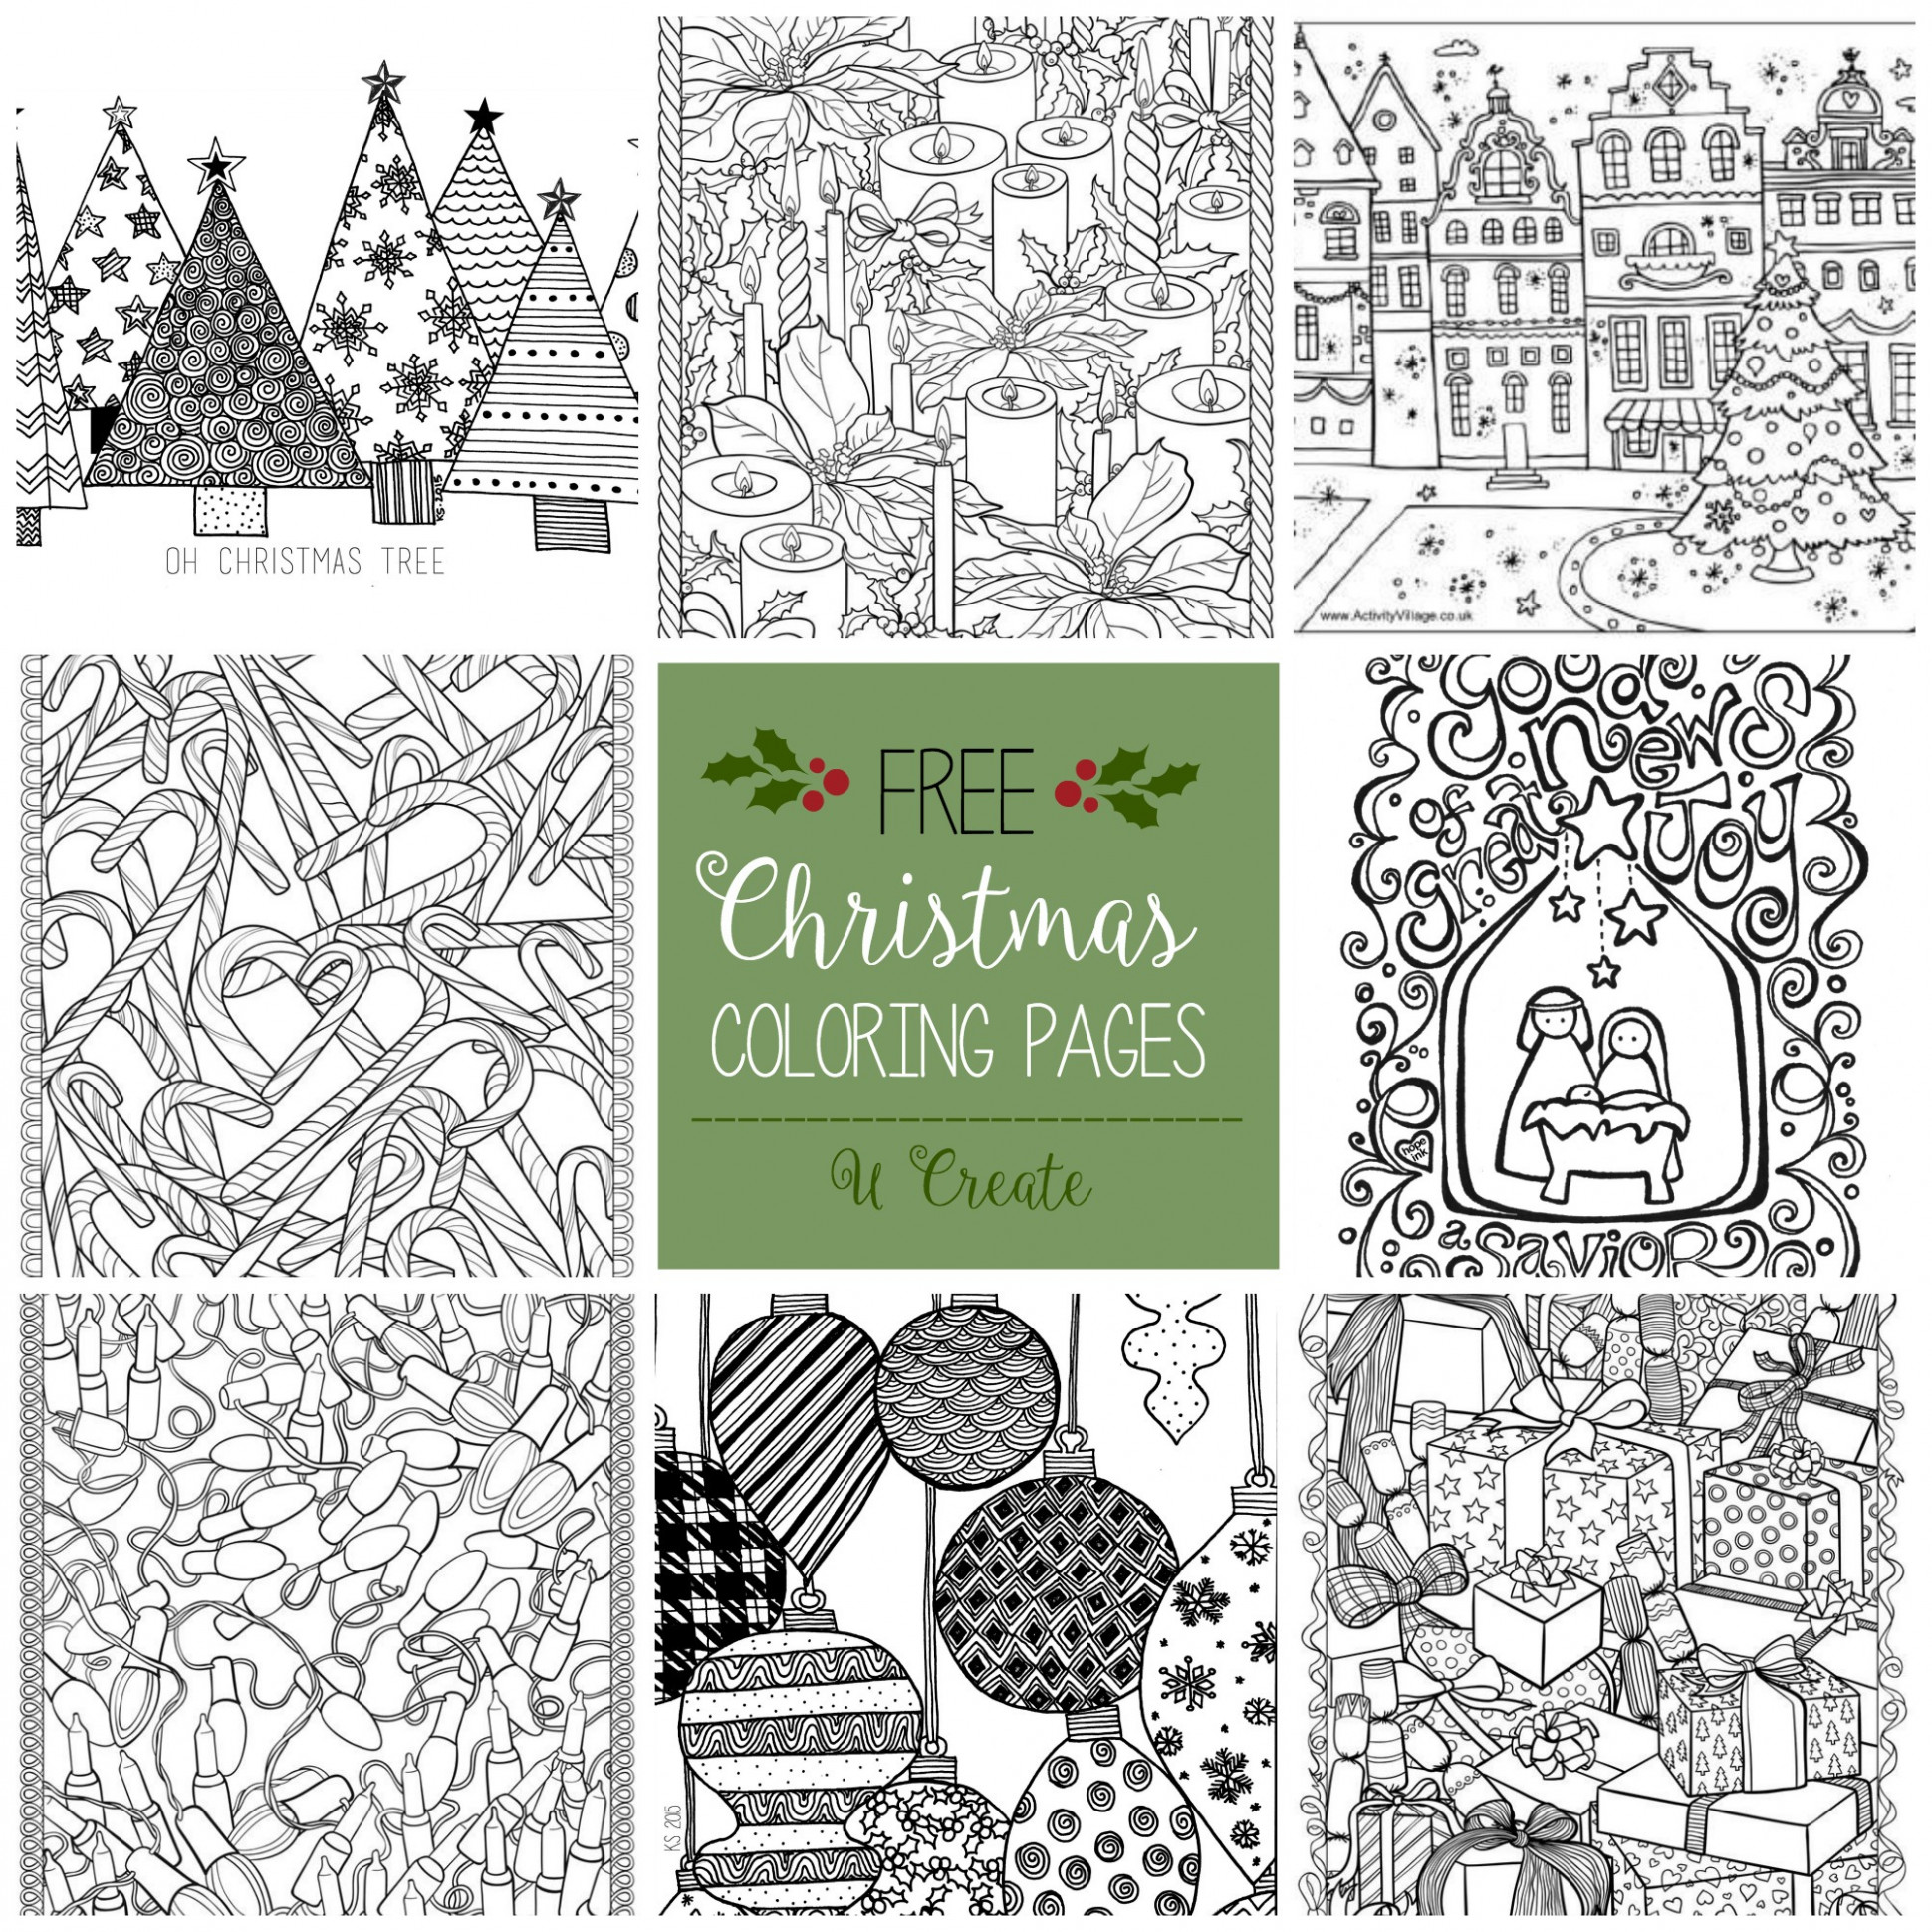 Free Christmas Adult Coloring Pages – U Create – Christmas Coloring Patterns